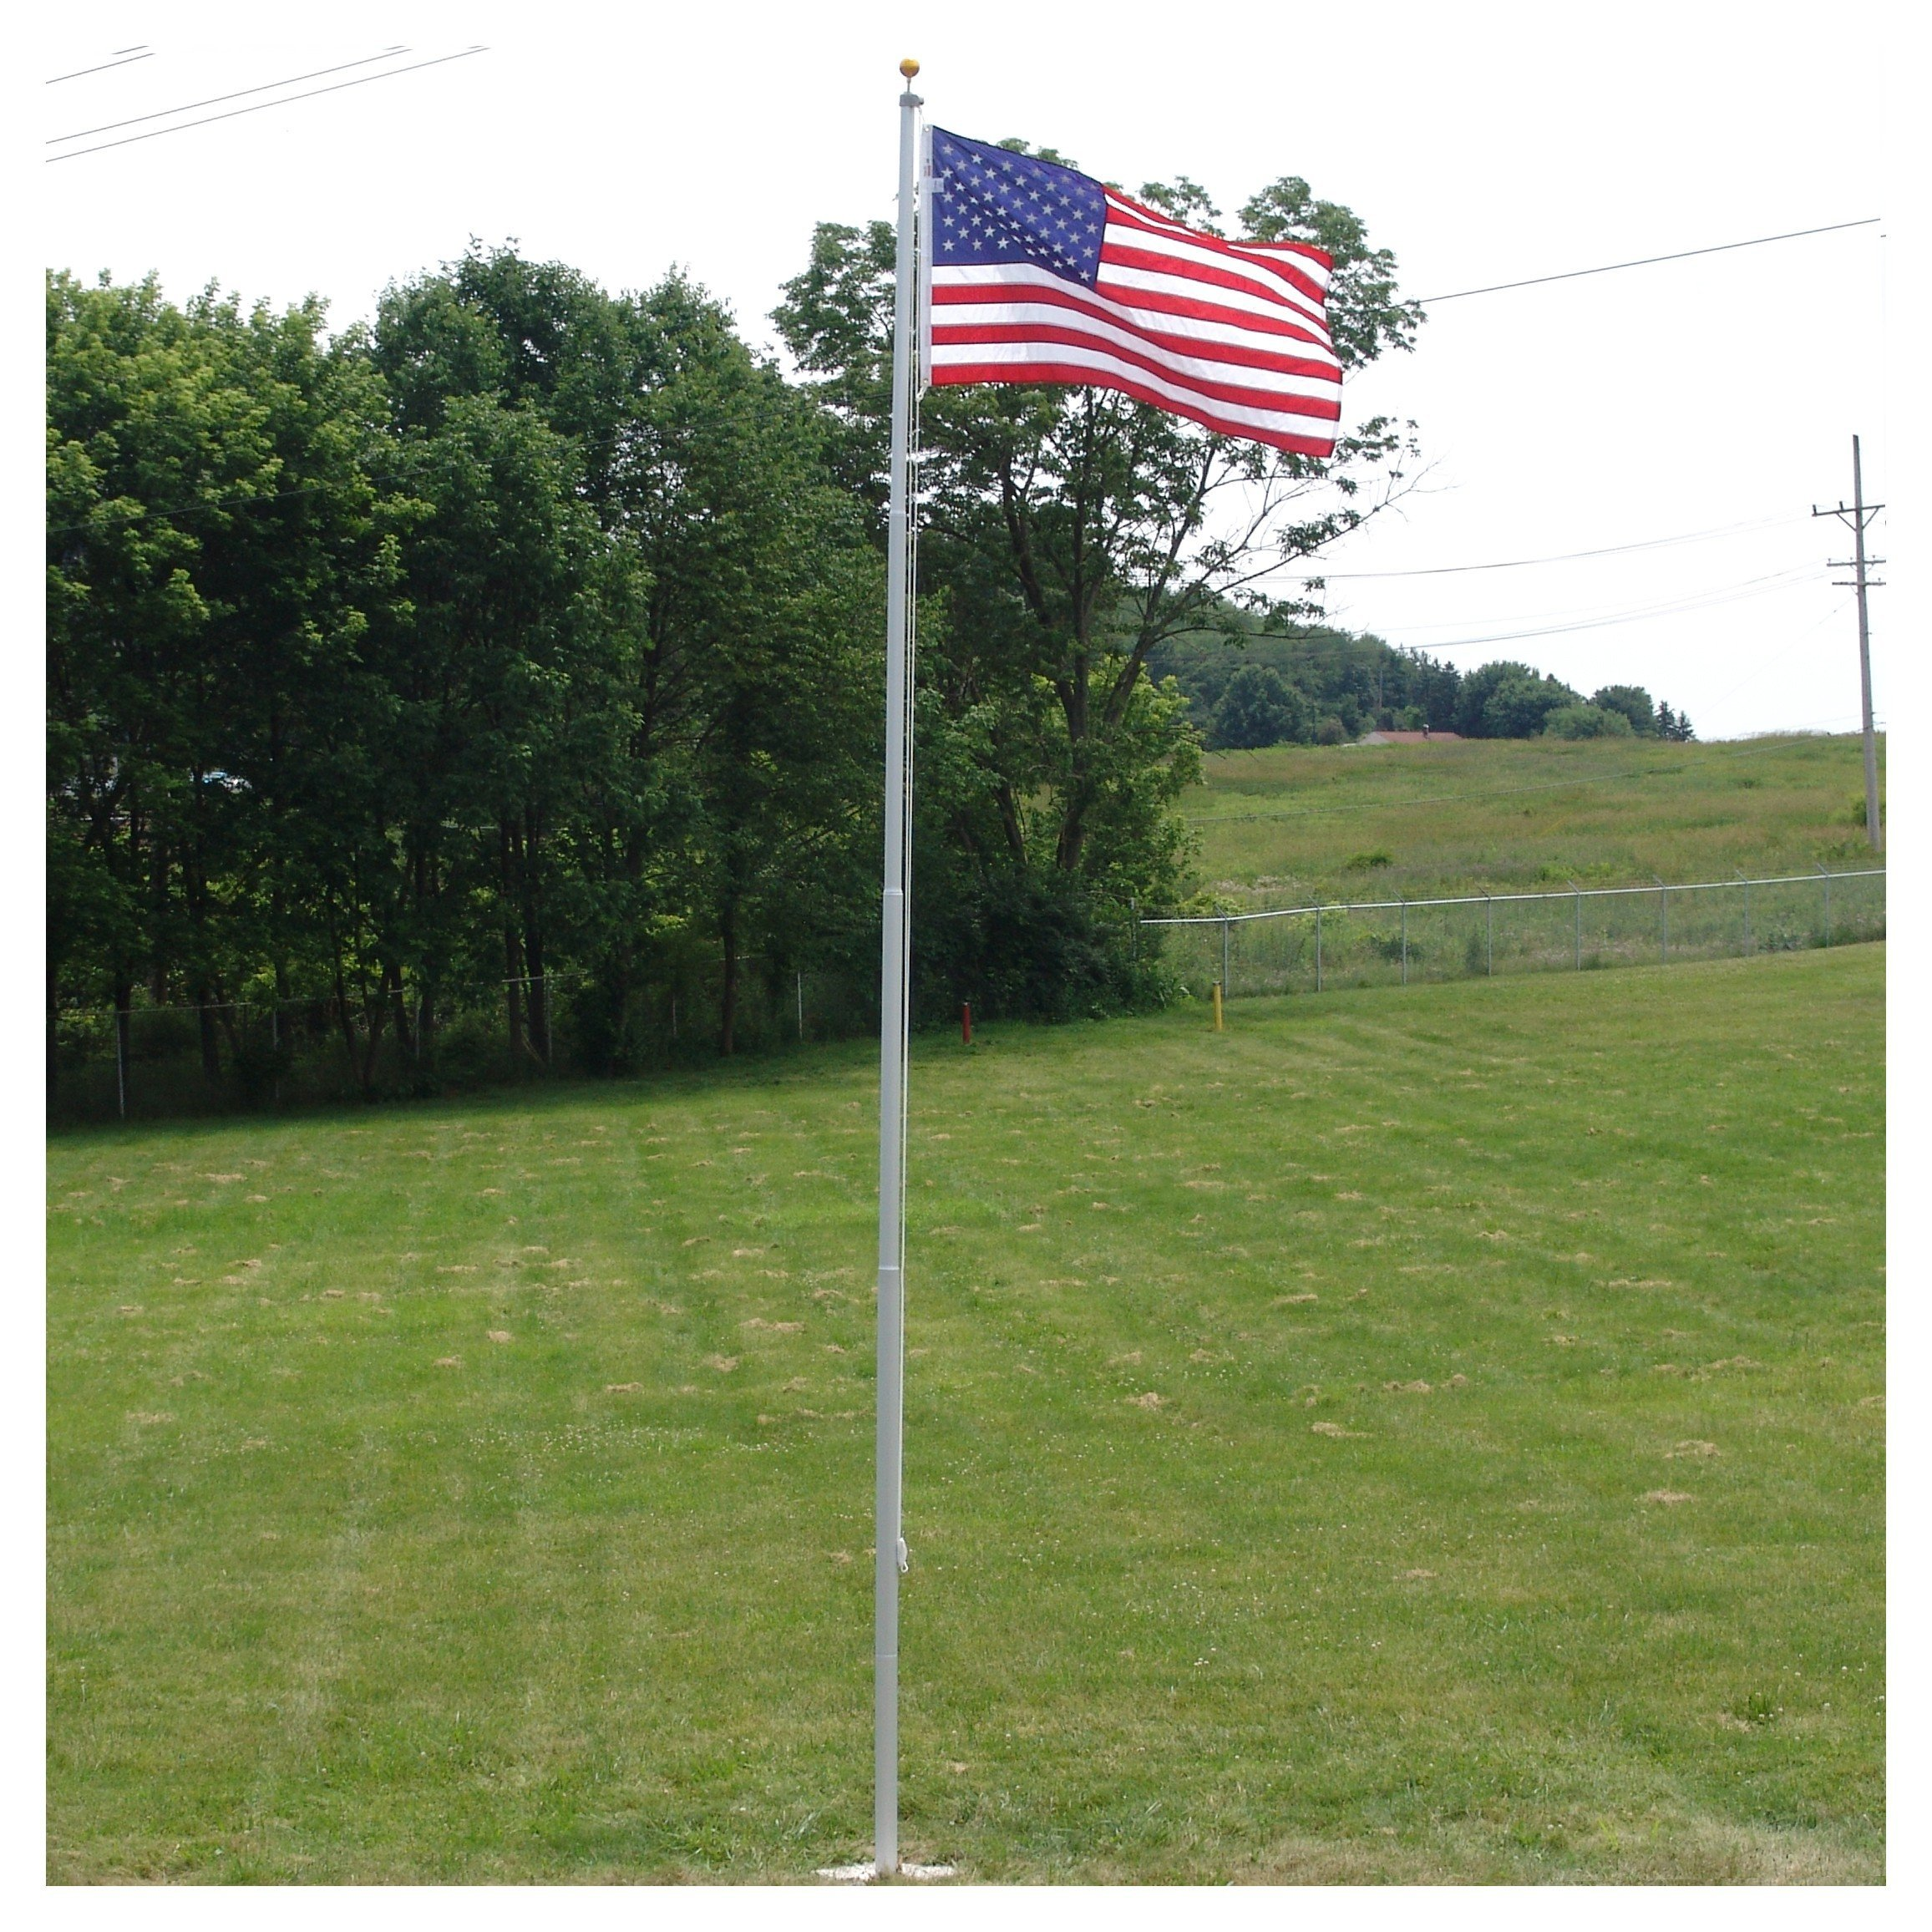 Super Tough 20ft Aluminum Residential Flagpole with Valley Forge 3 ft x 5 ft Flag